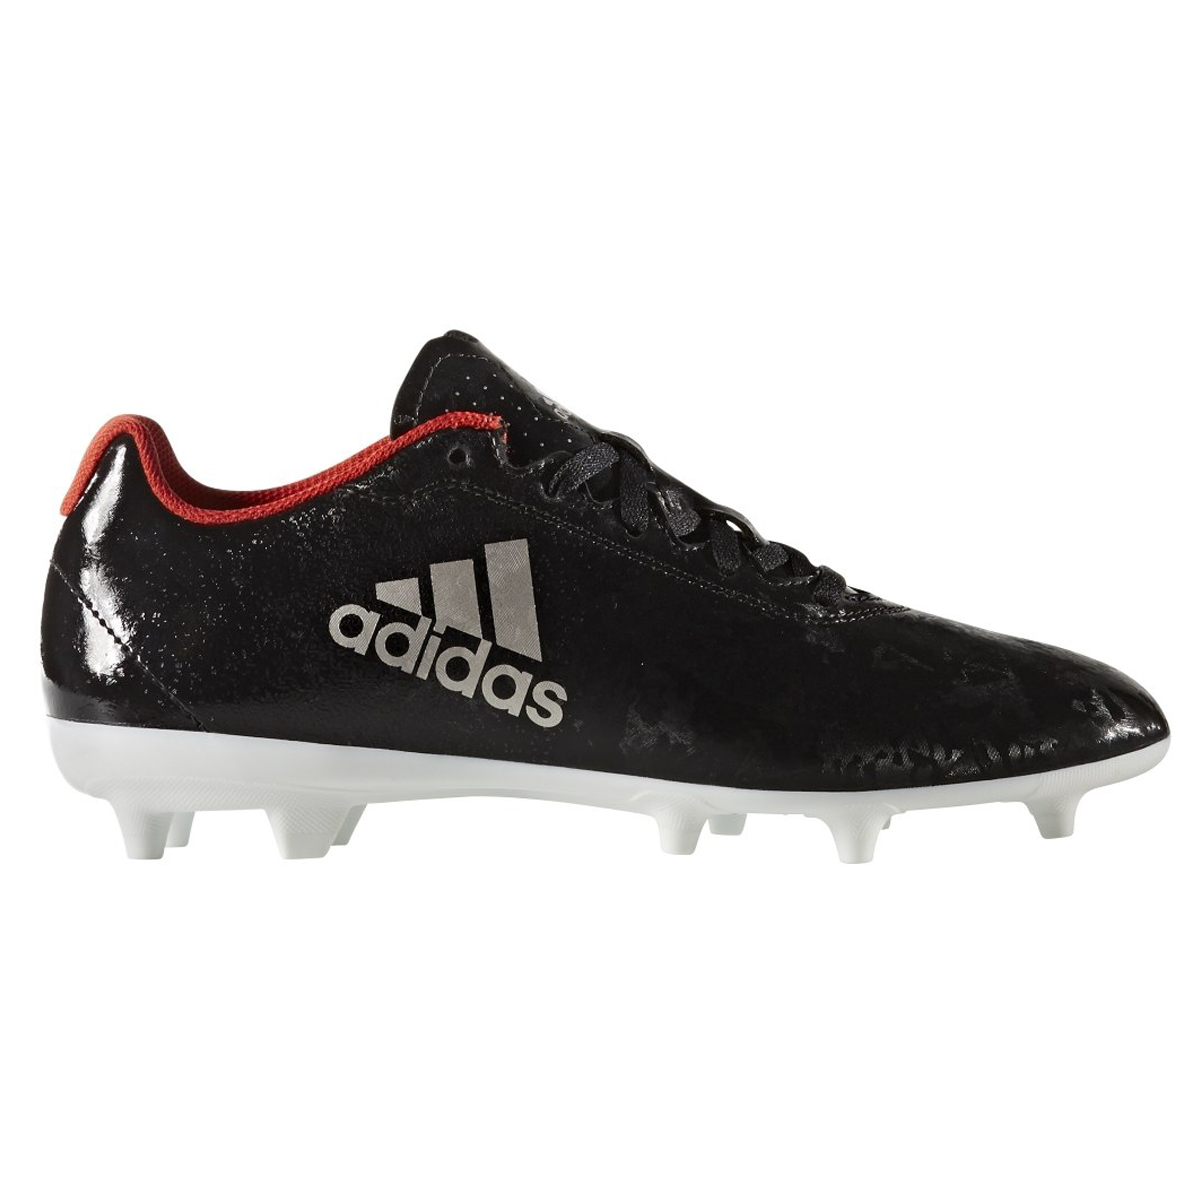 Adidas Messi 16.4 Soccer Shoes For Boys Red price in Egypt | Compare Prices